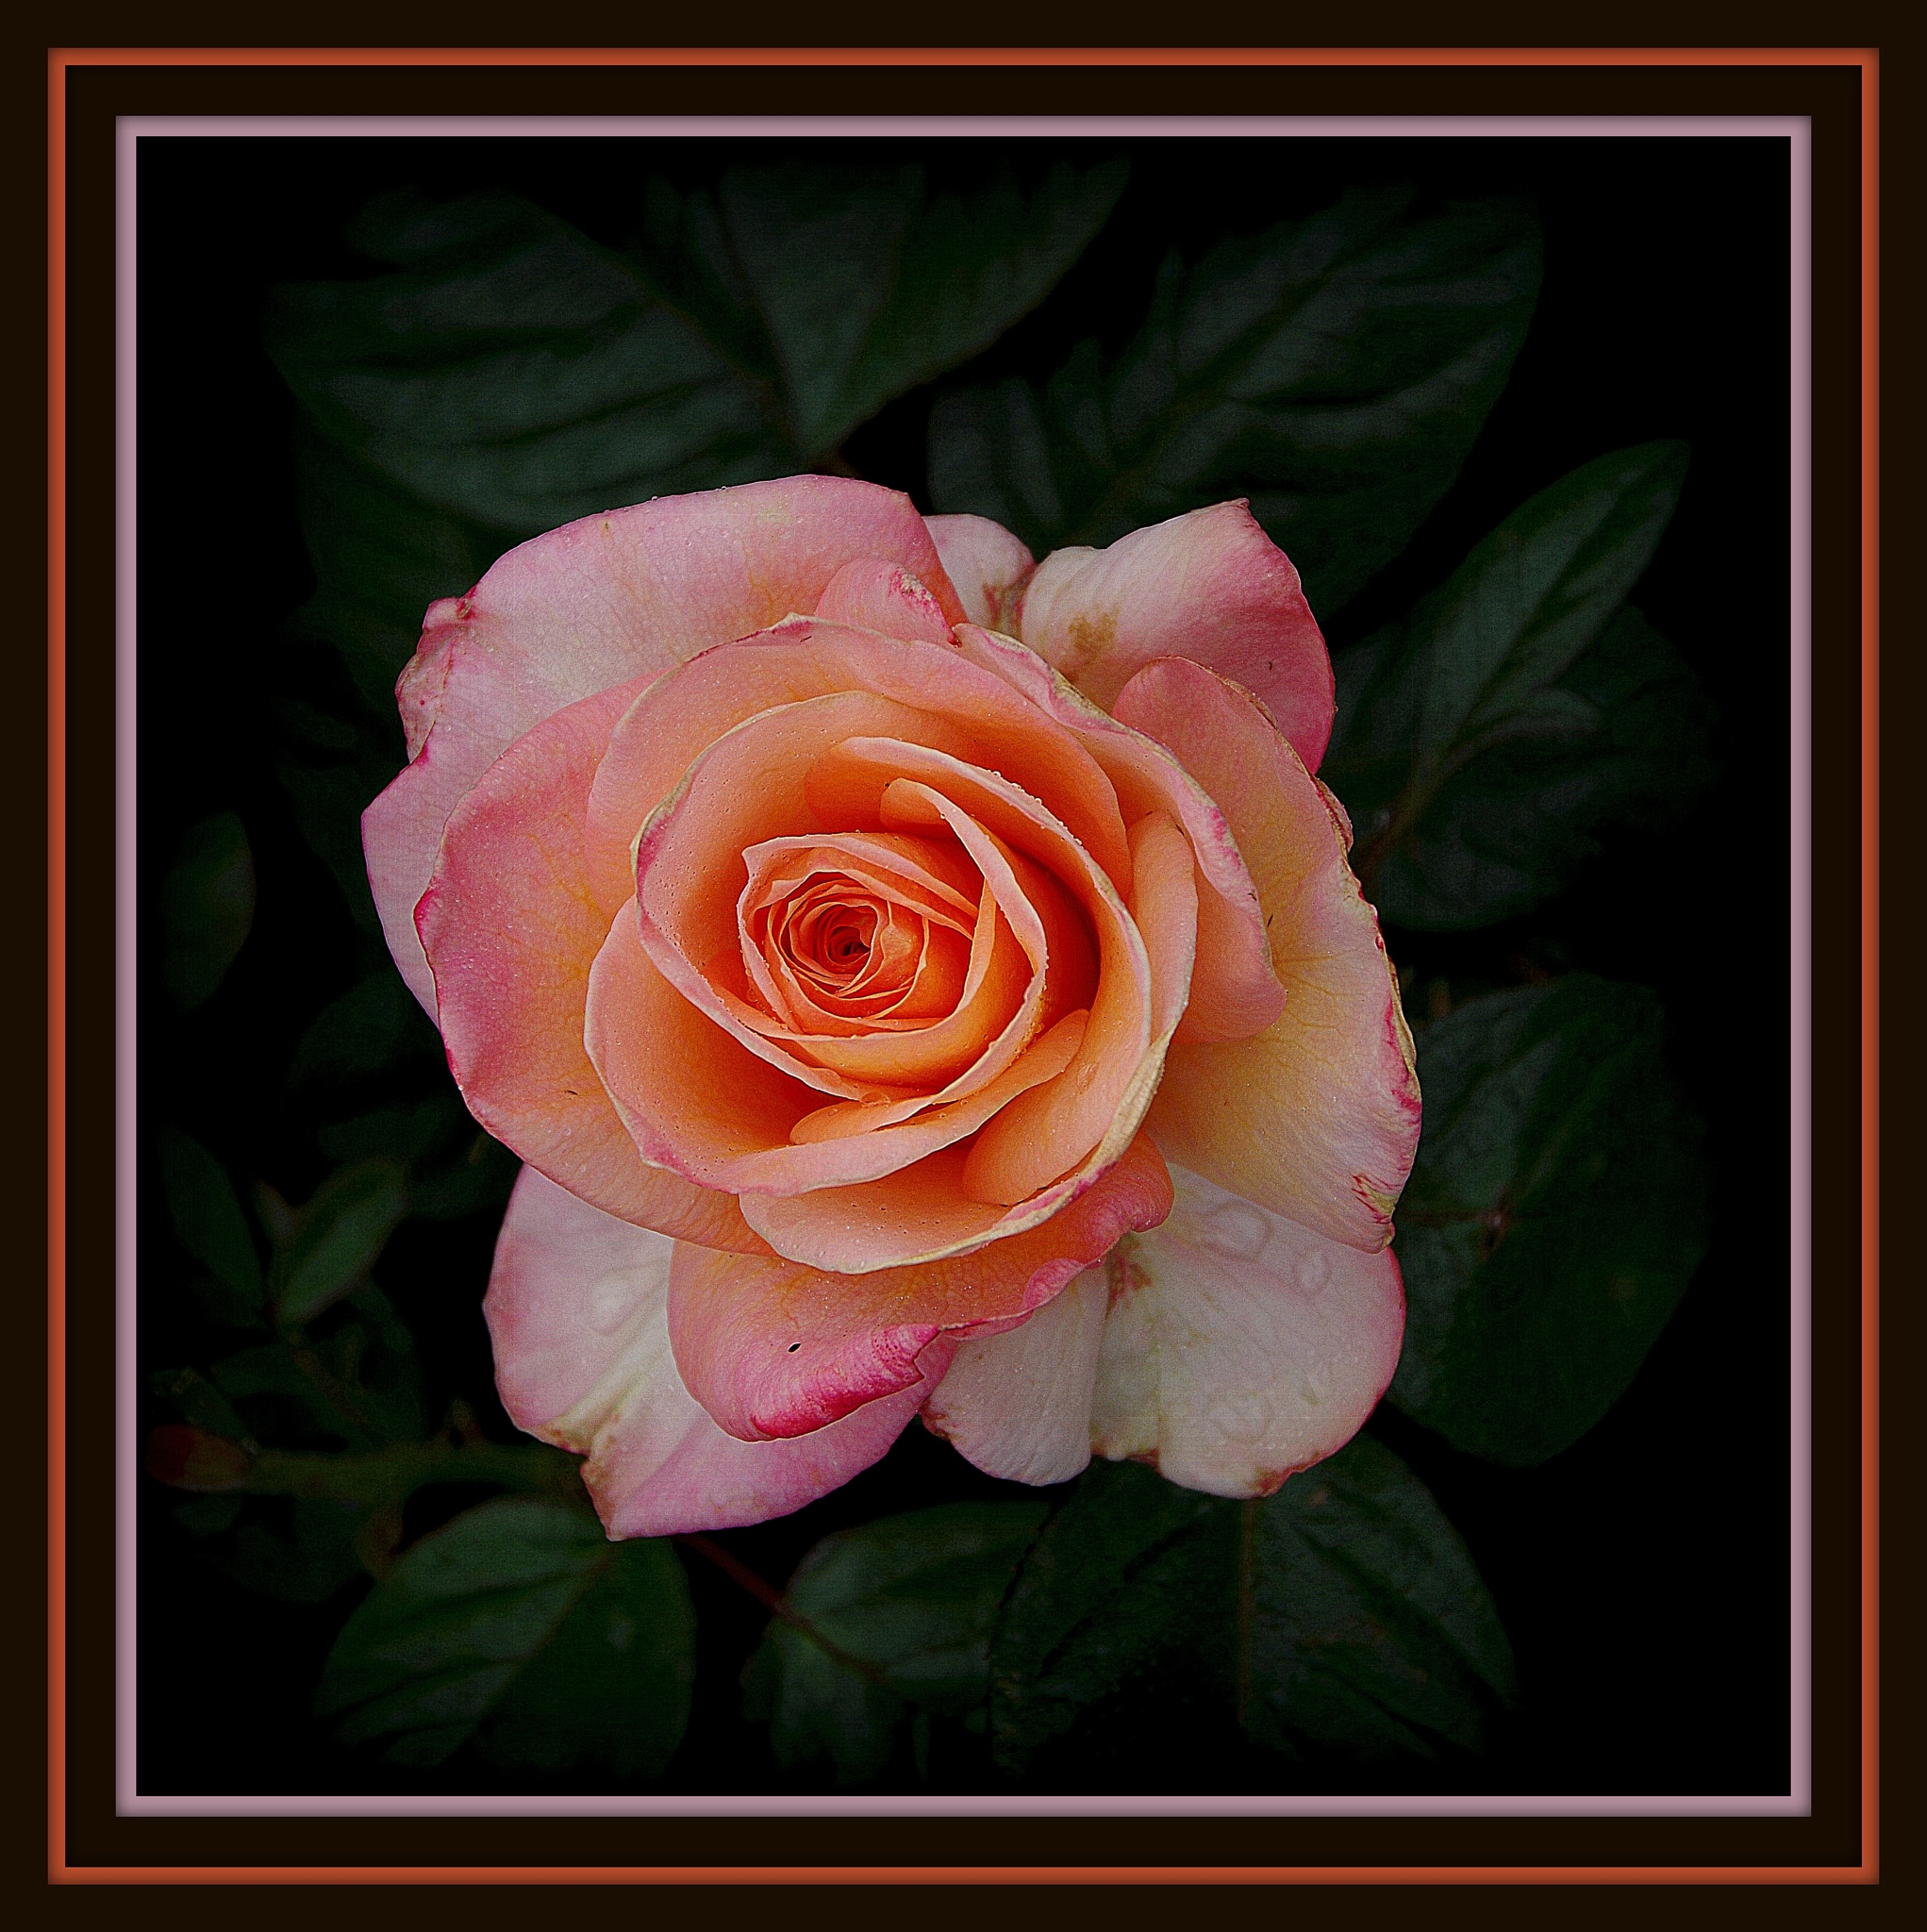 some of my roses..# 5 by ragnes840